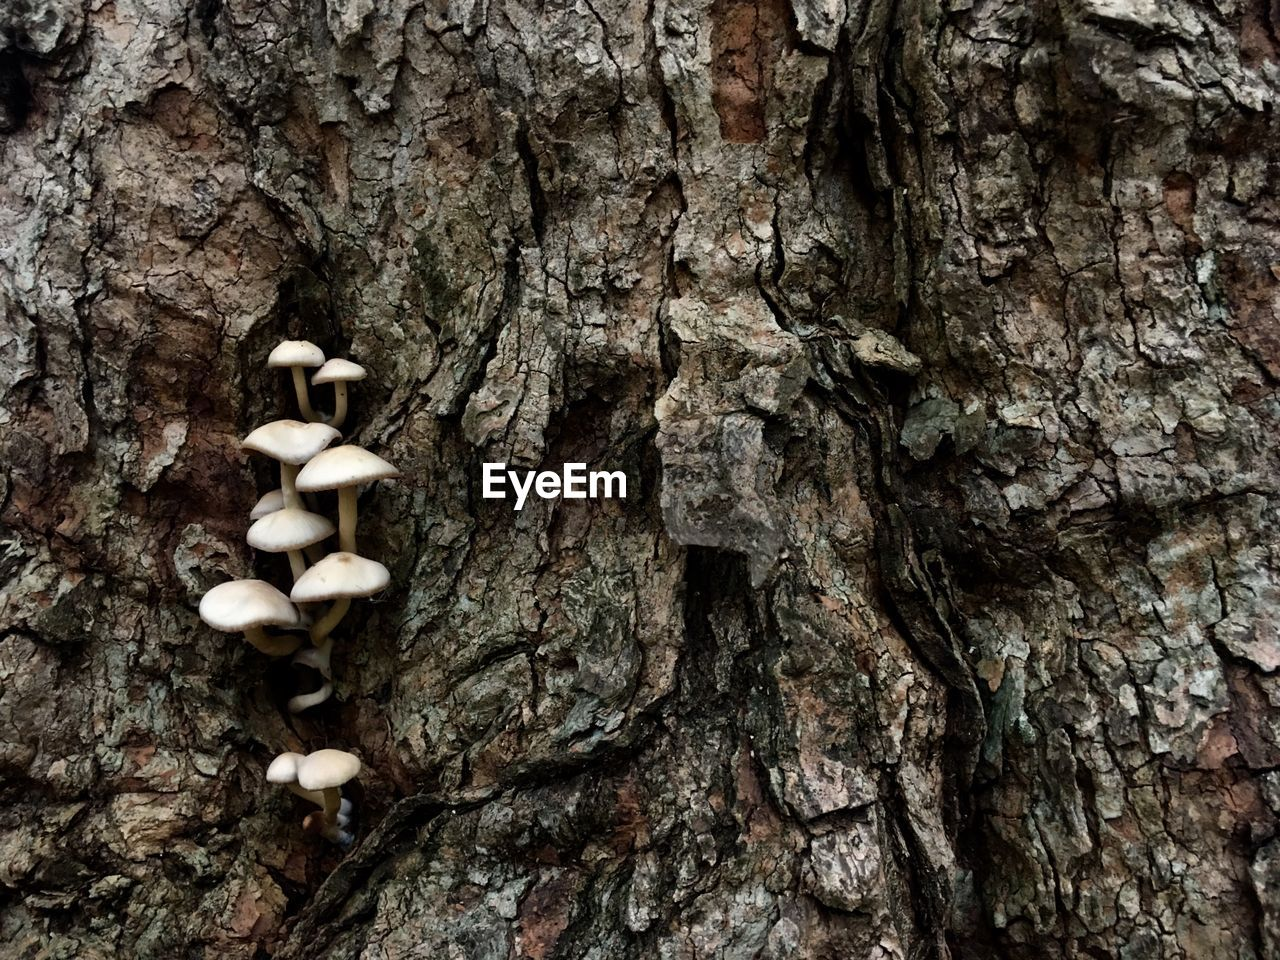 trunk, tree trunk, tree, plant, textured, mushroom, fungus, growth, nature, close-up, no people, food, plant bark, vegetable, full frame, day, rough, backgrounds, beauty in nature, bark, outdoors, toadstool, lichen, textured effect